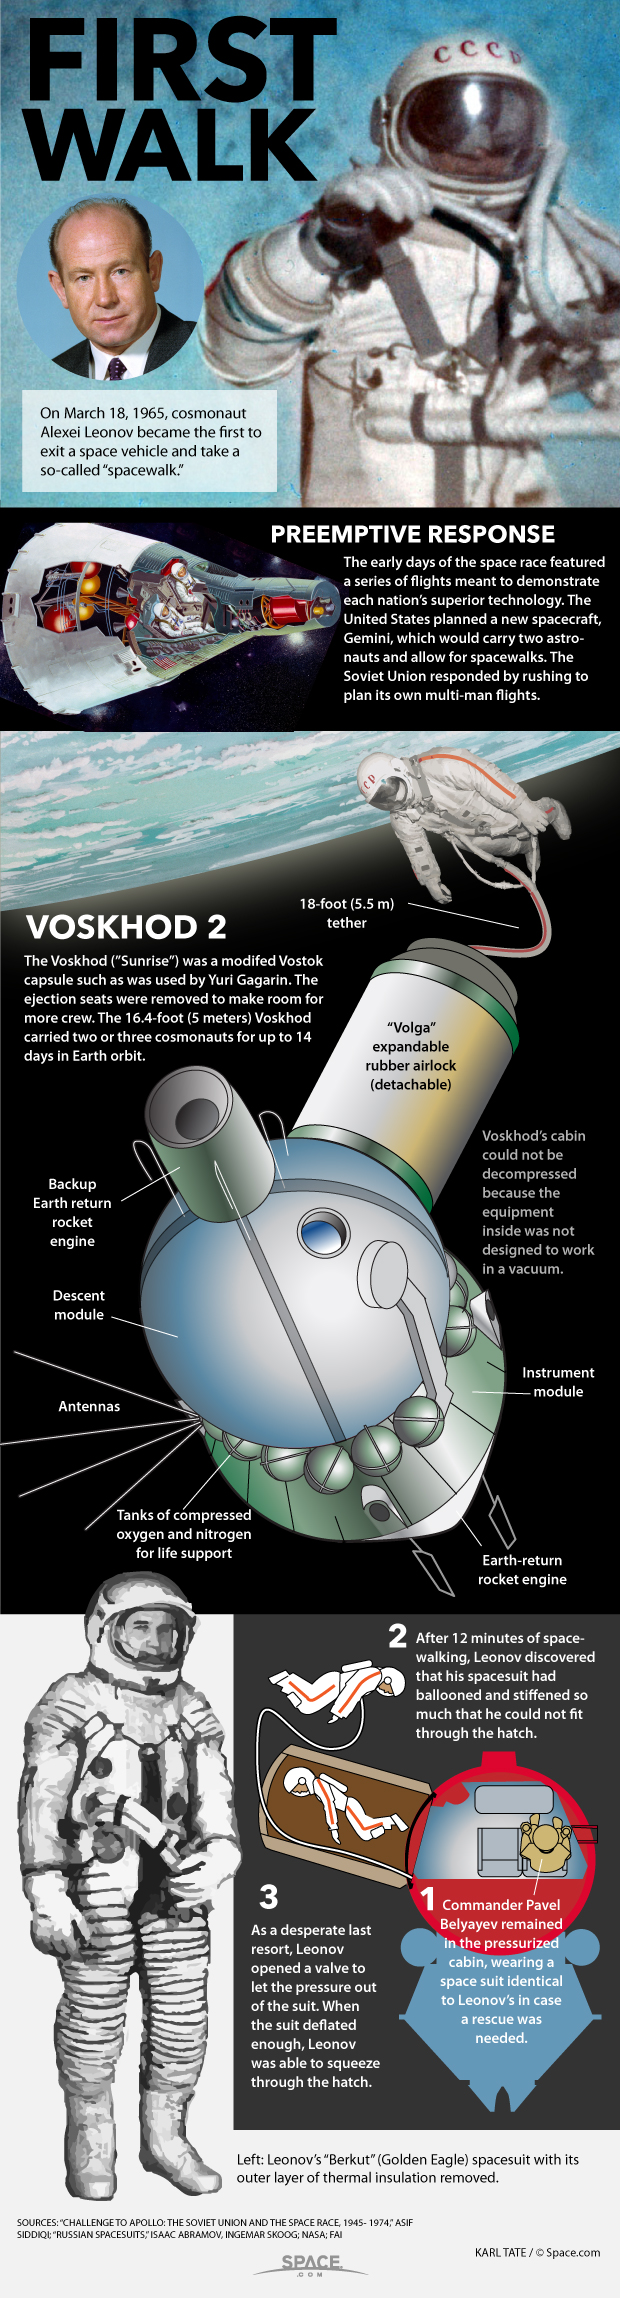 Diagram of Leonov's spacewalk.